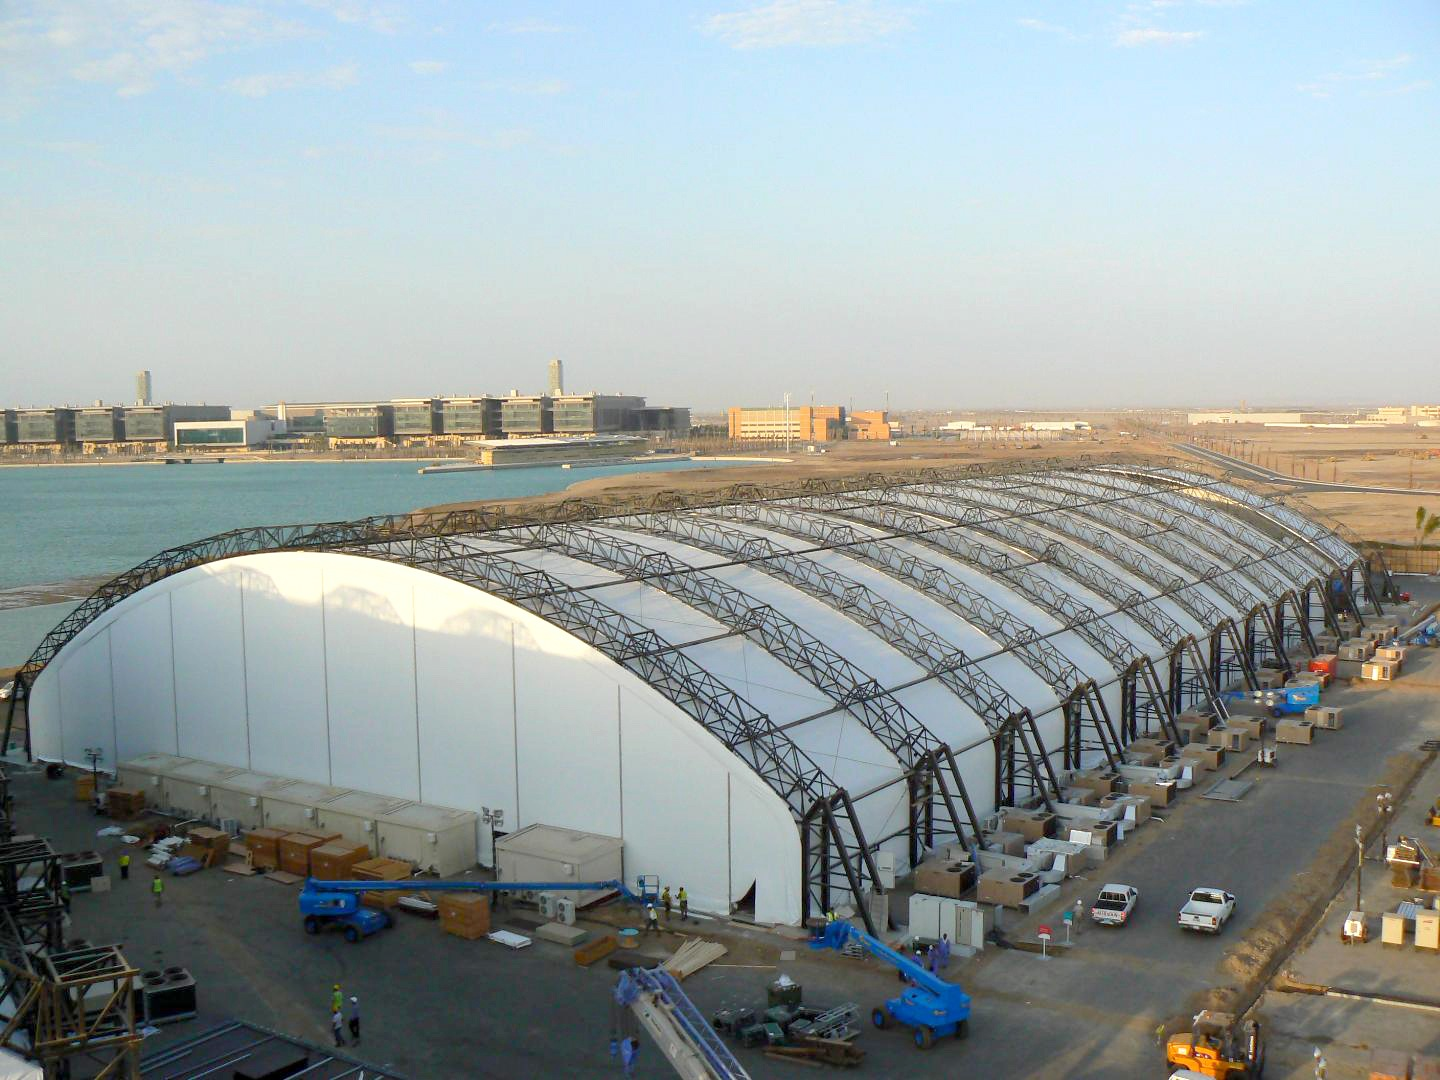 KAUST - Tensile Fabric Pavilion Structure